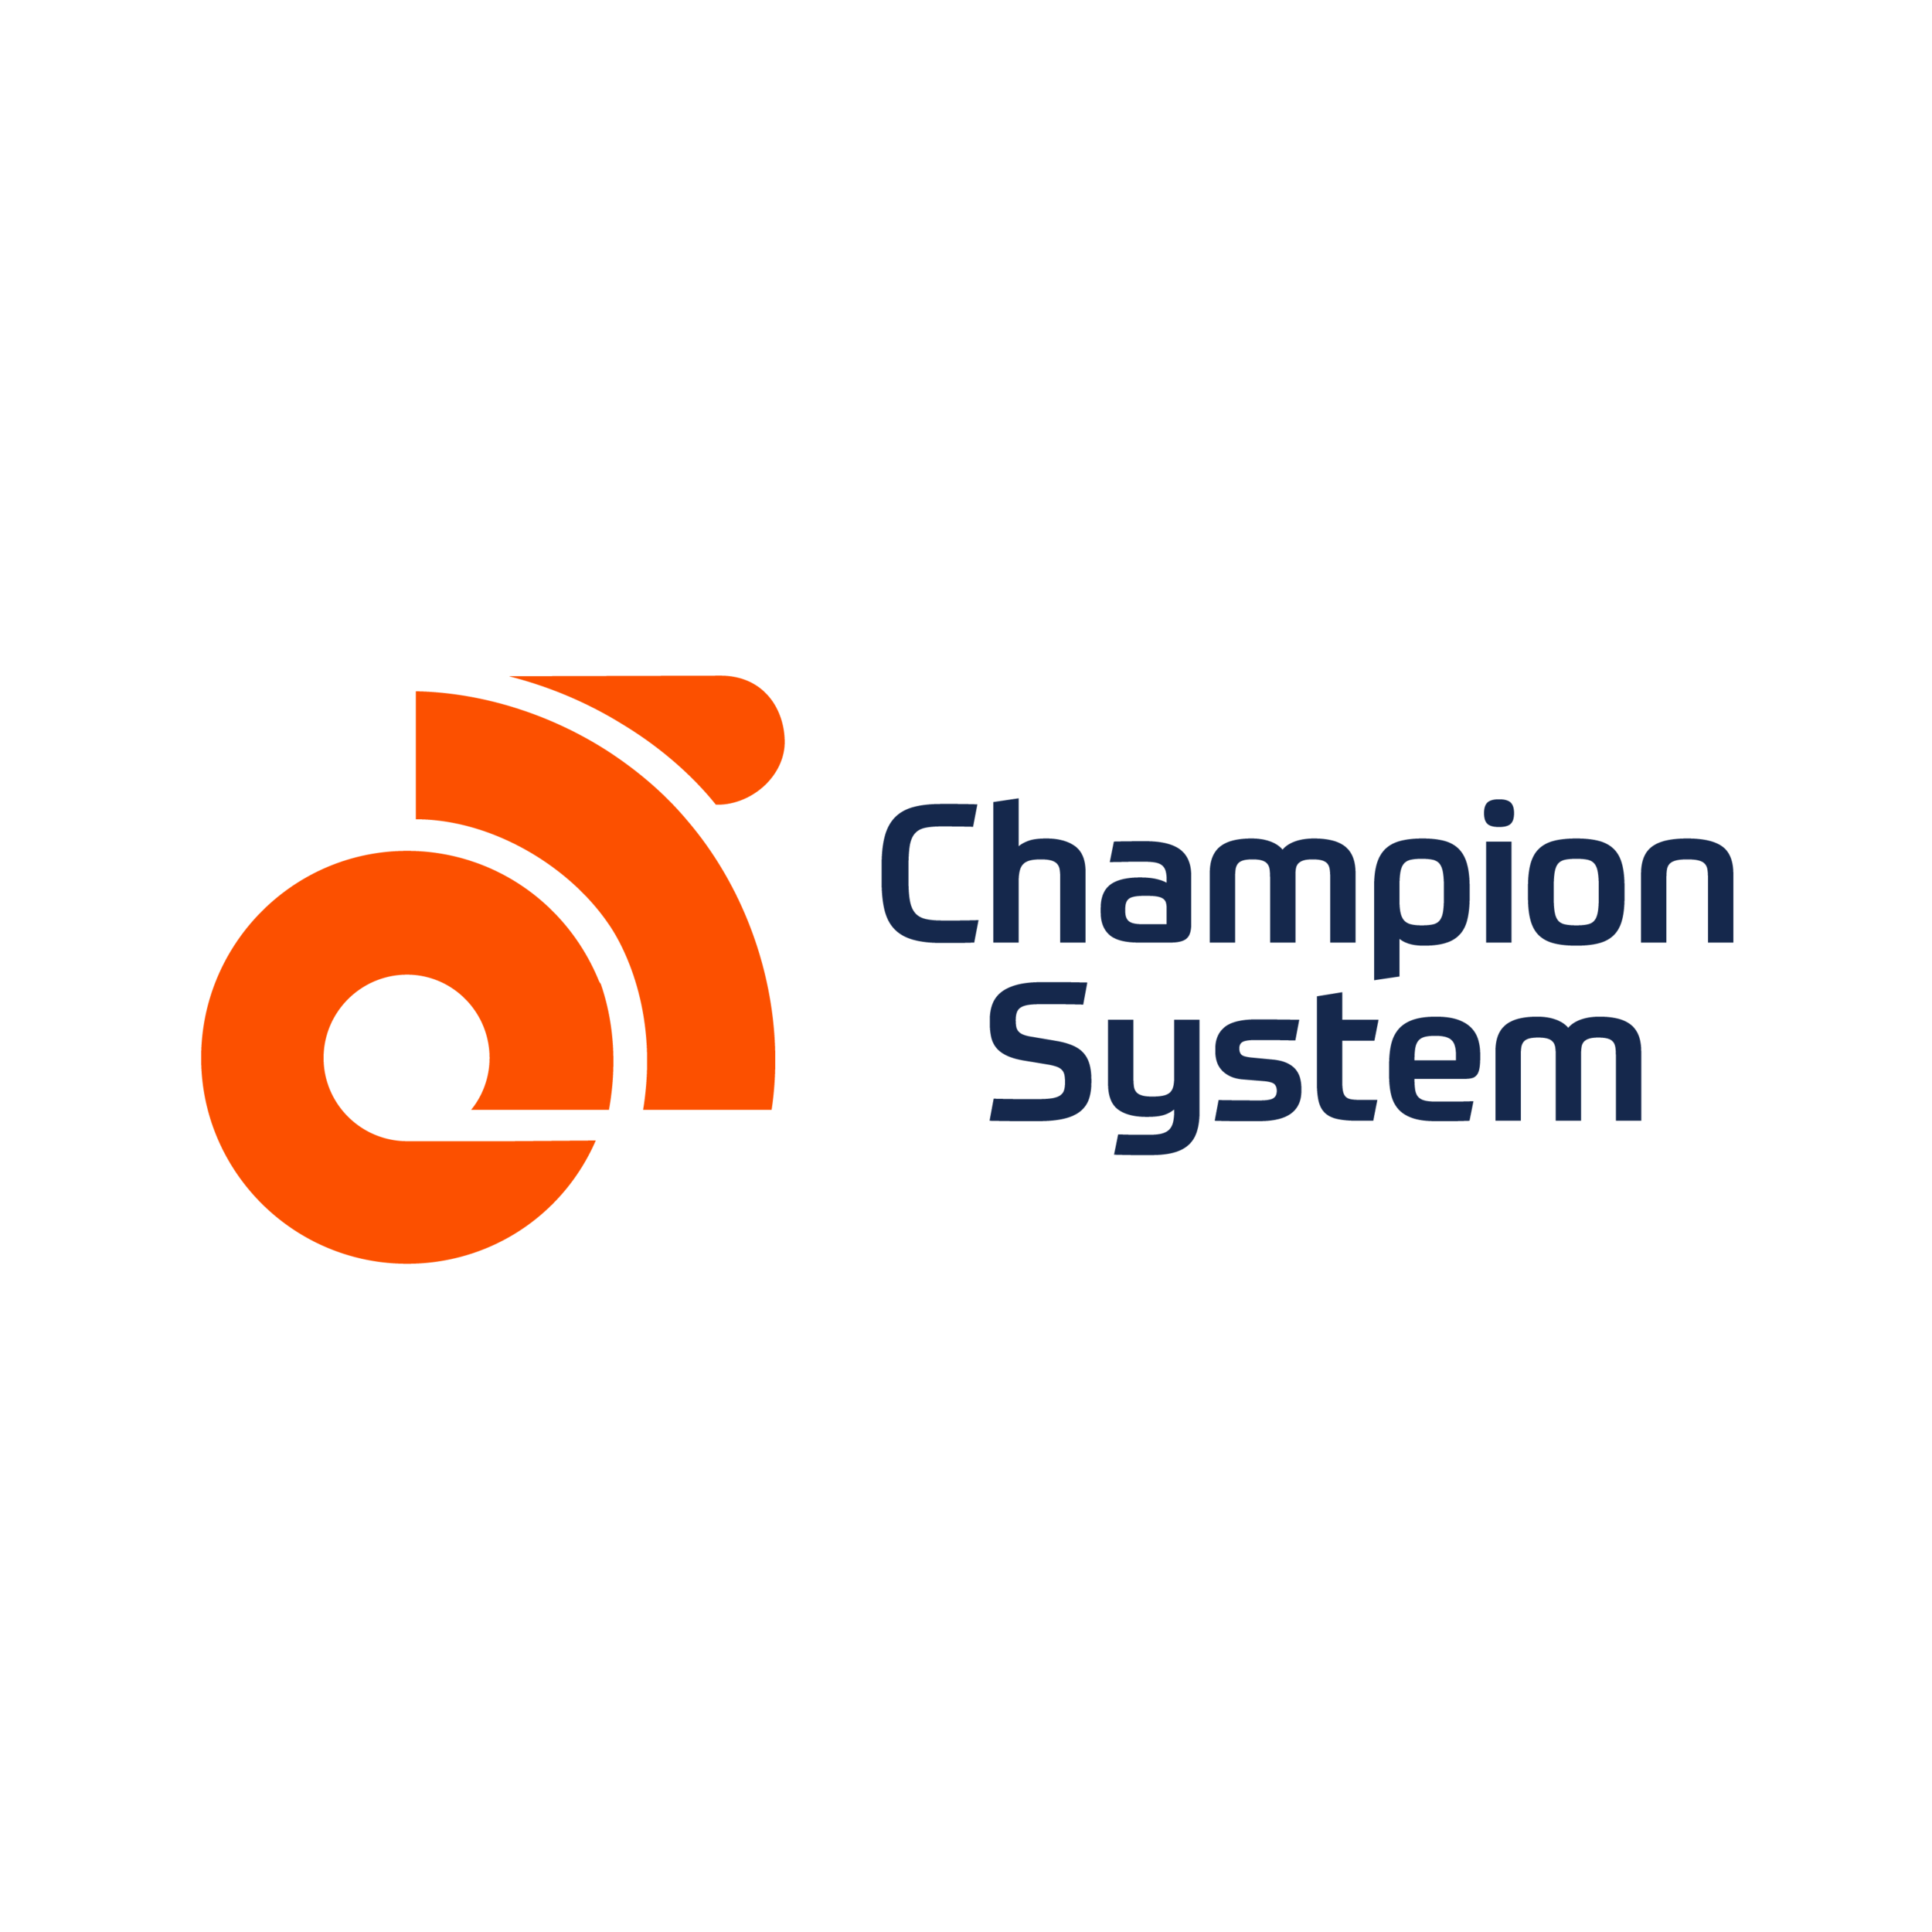 Champion System specializes in custom apparel for a wide range of sports including cycling, triathlon, running, casual and more. With offices around the world we are committed to offering high quality products and outstanding customer service.